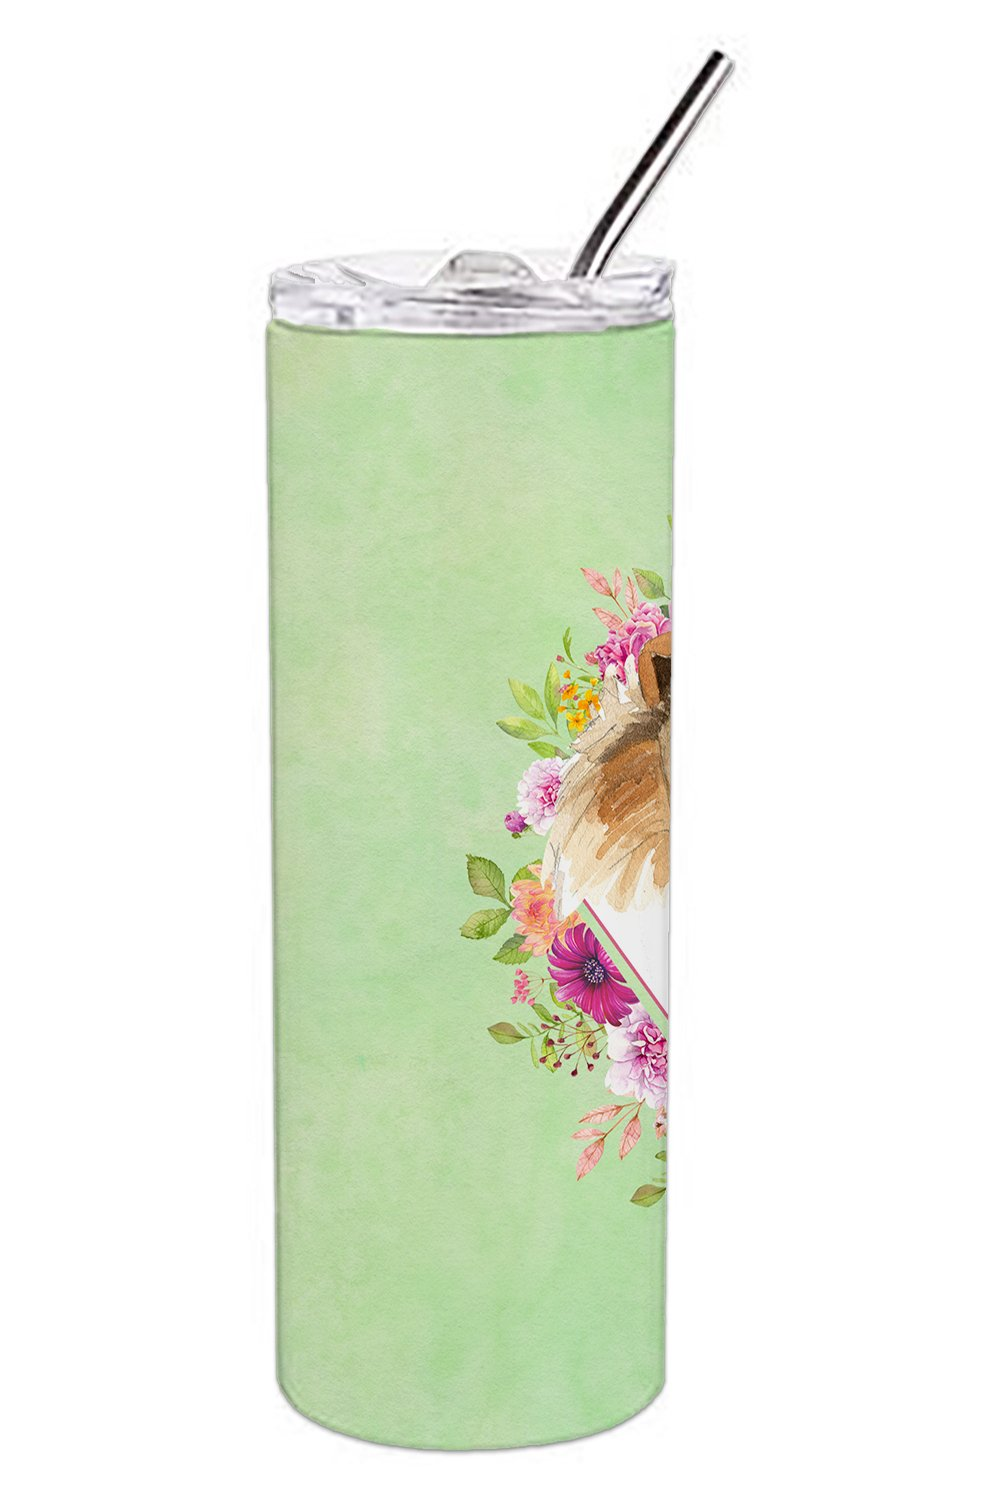 Collie Green Flowers Double Walled Stainless Steel 20 oz Skinny Tumbler CK4376TBL20 by Caroline's Treasures